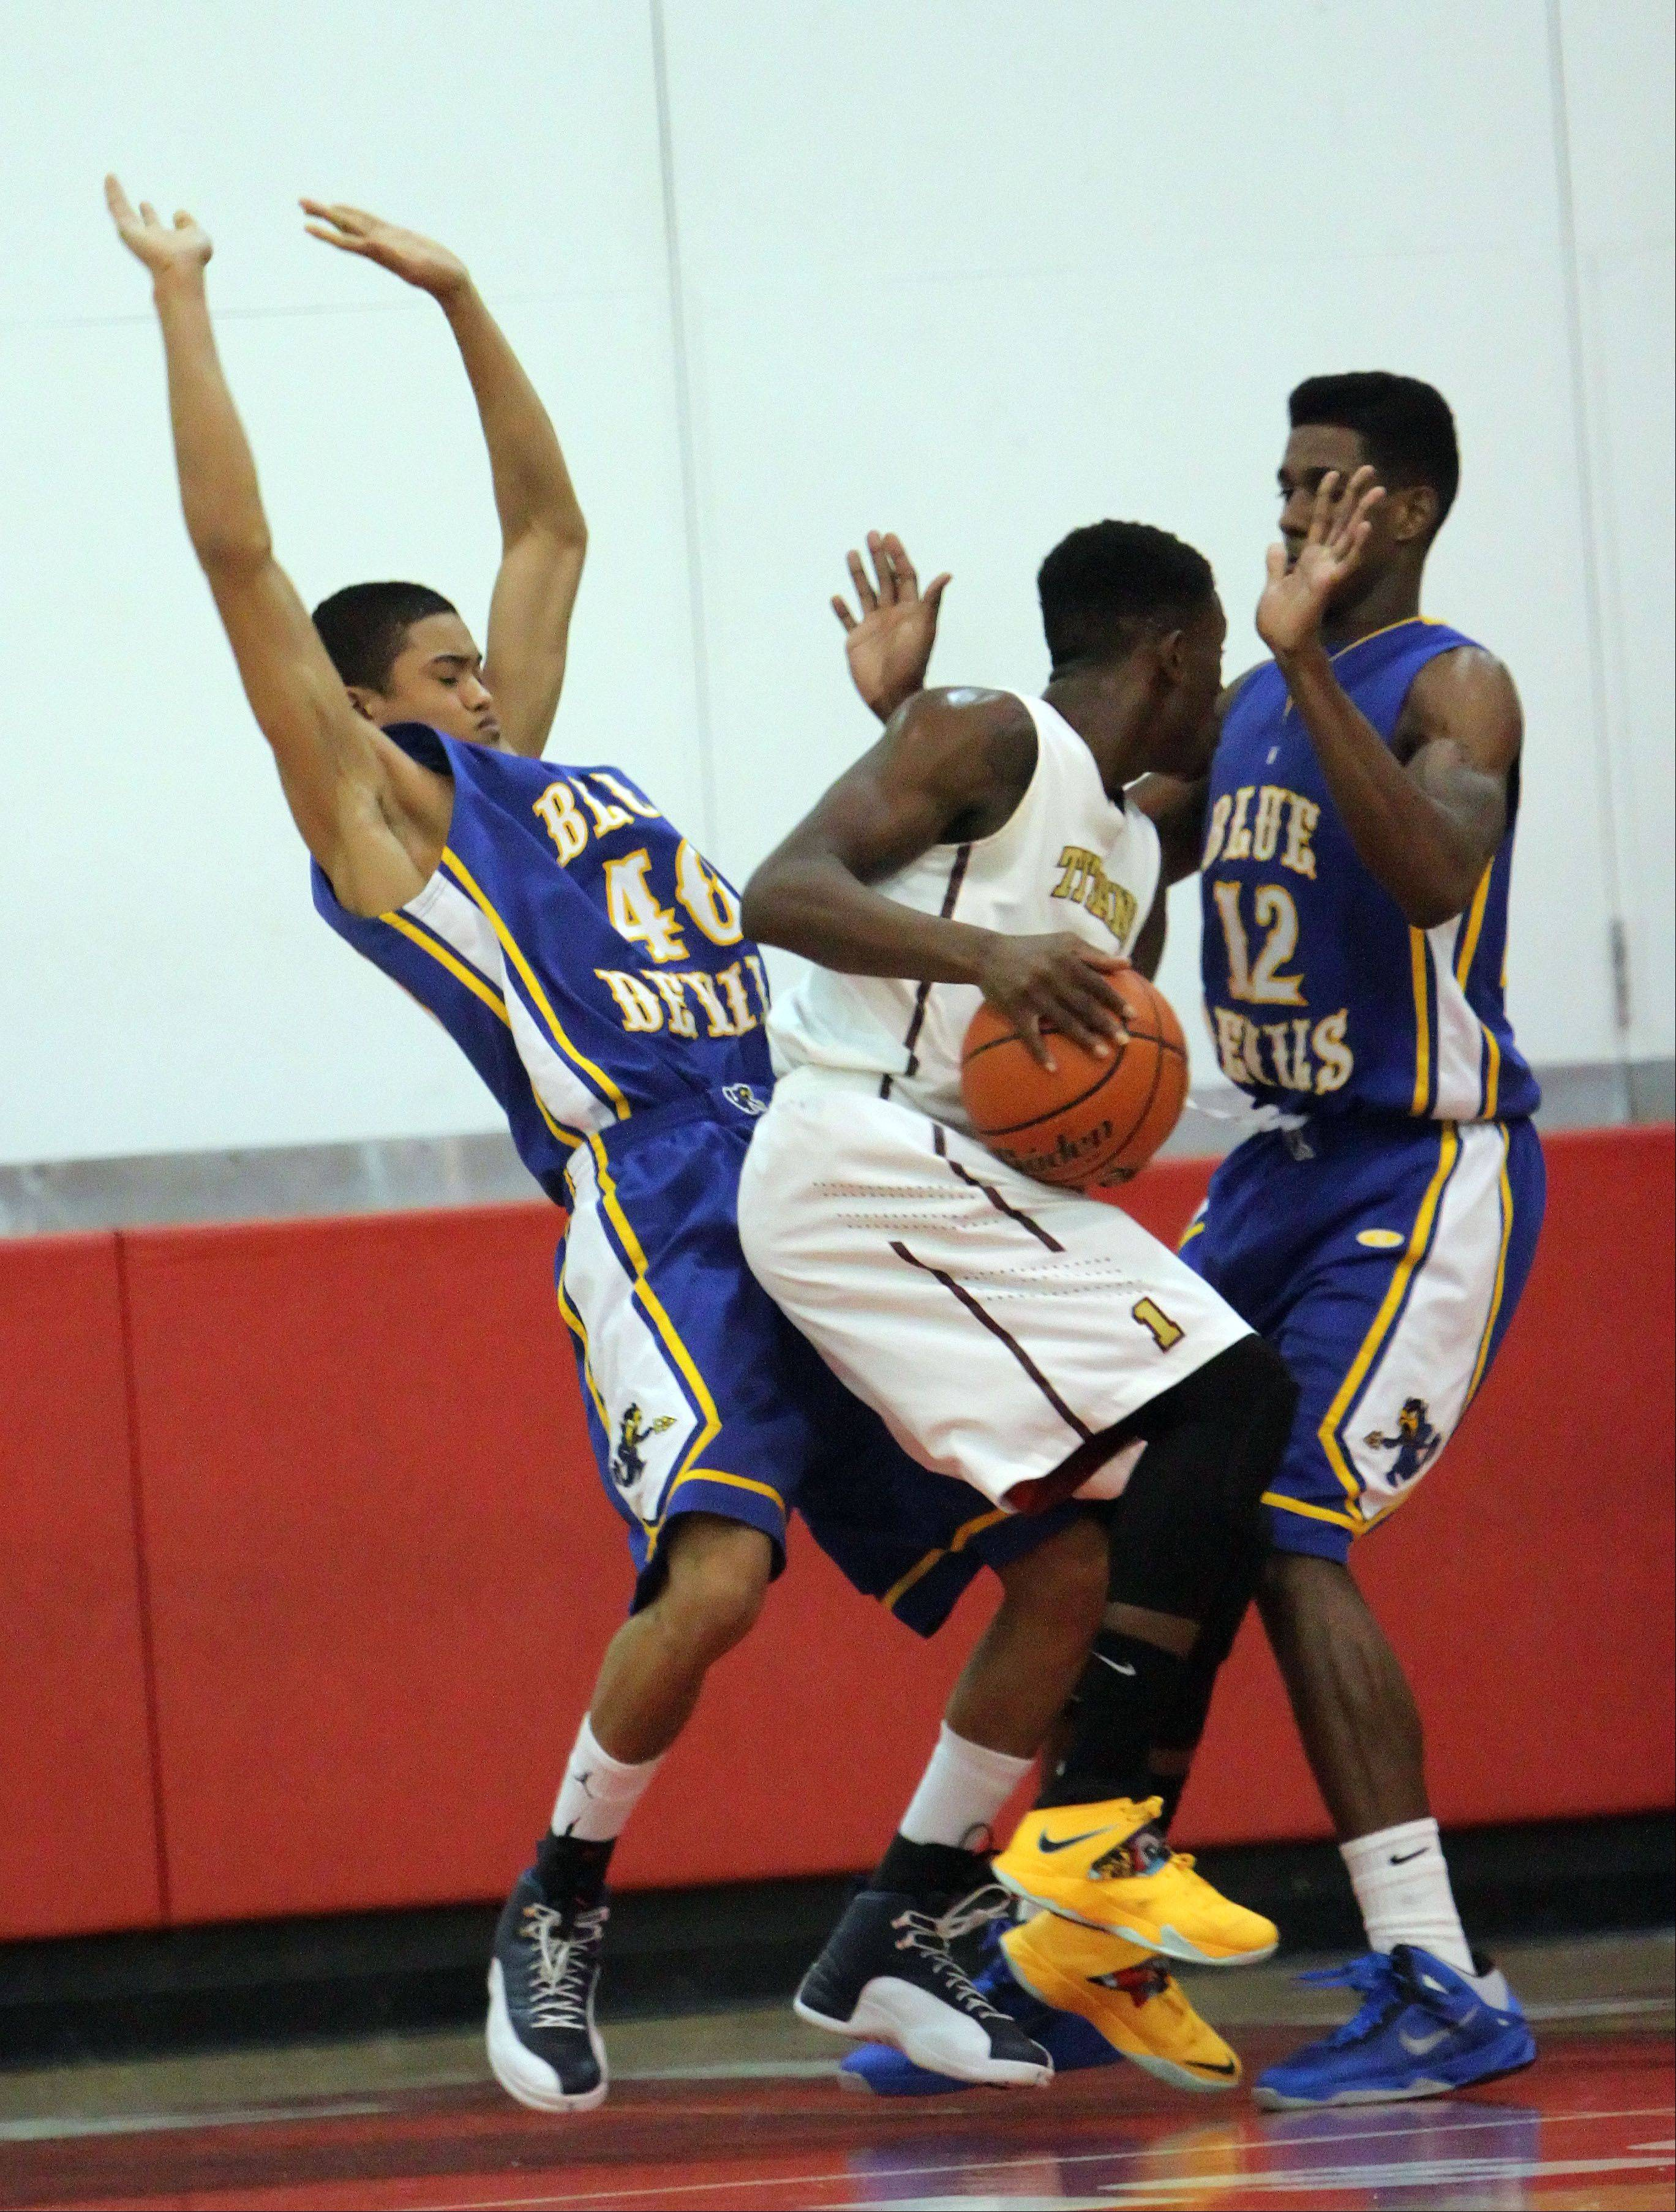 Steve Lundy/slundy@dailyherald.comWarren's CJ Payawal, left, and Greg Swain double team Uplift's Augustin Tronou on Tuesday at Mundelein.